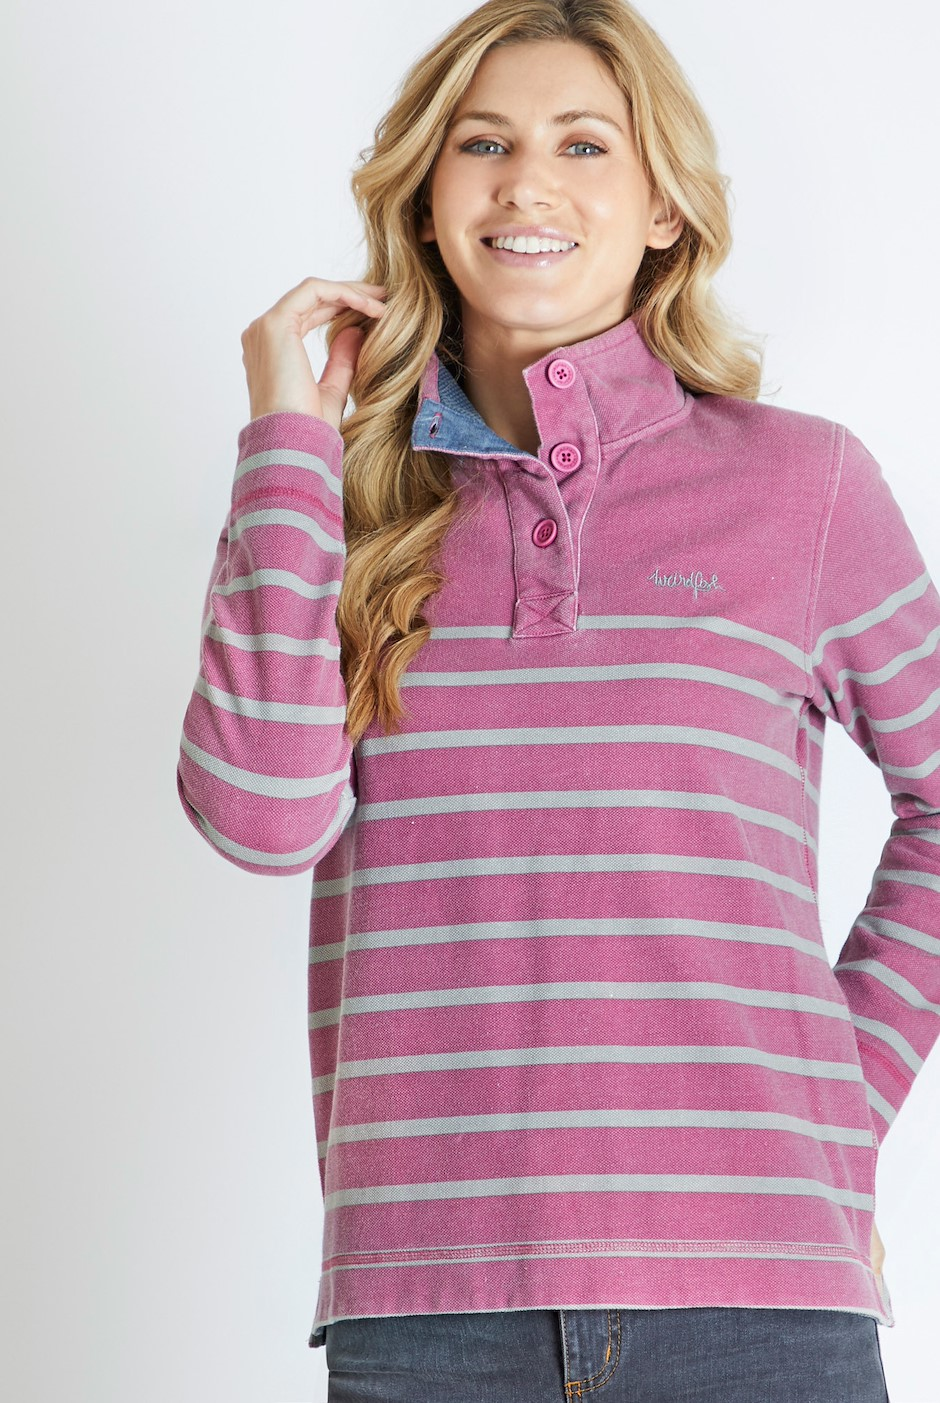 Hansley Button Neck Striped Sweatshirt Malaga